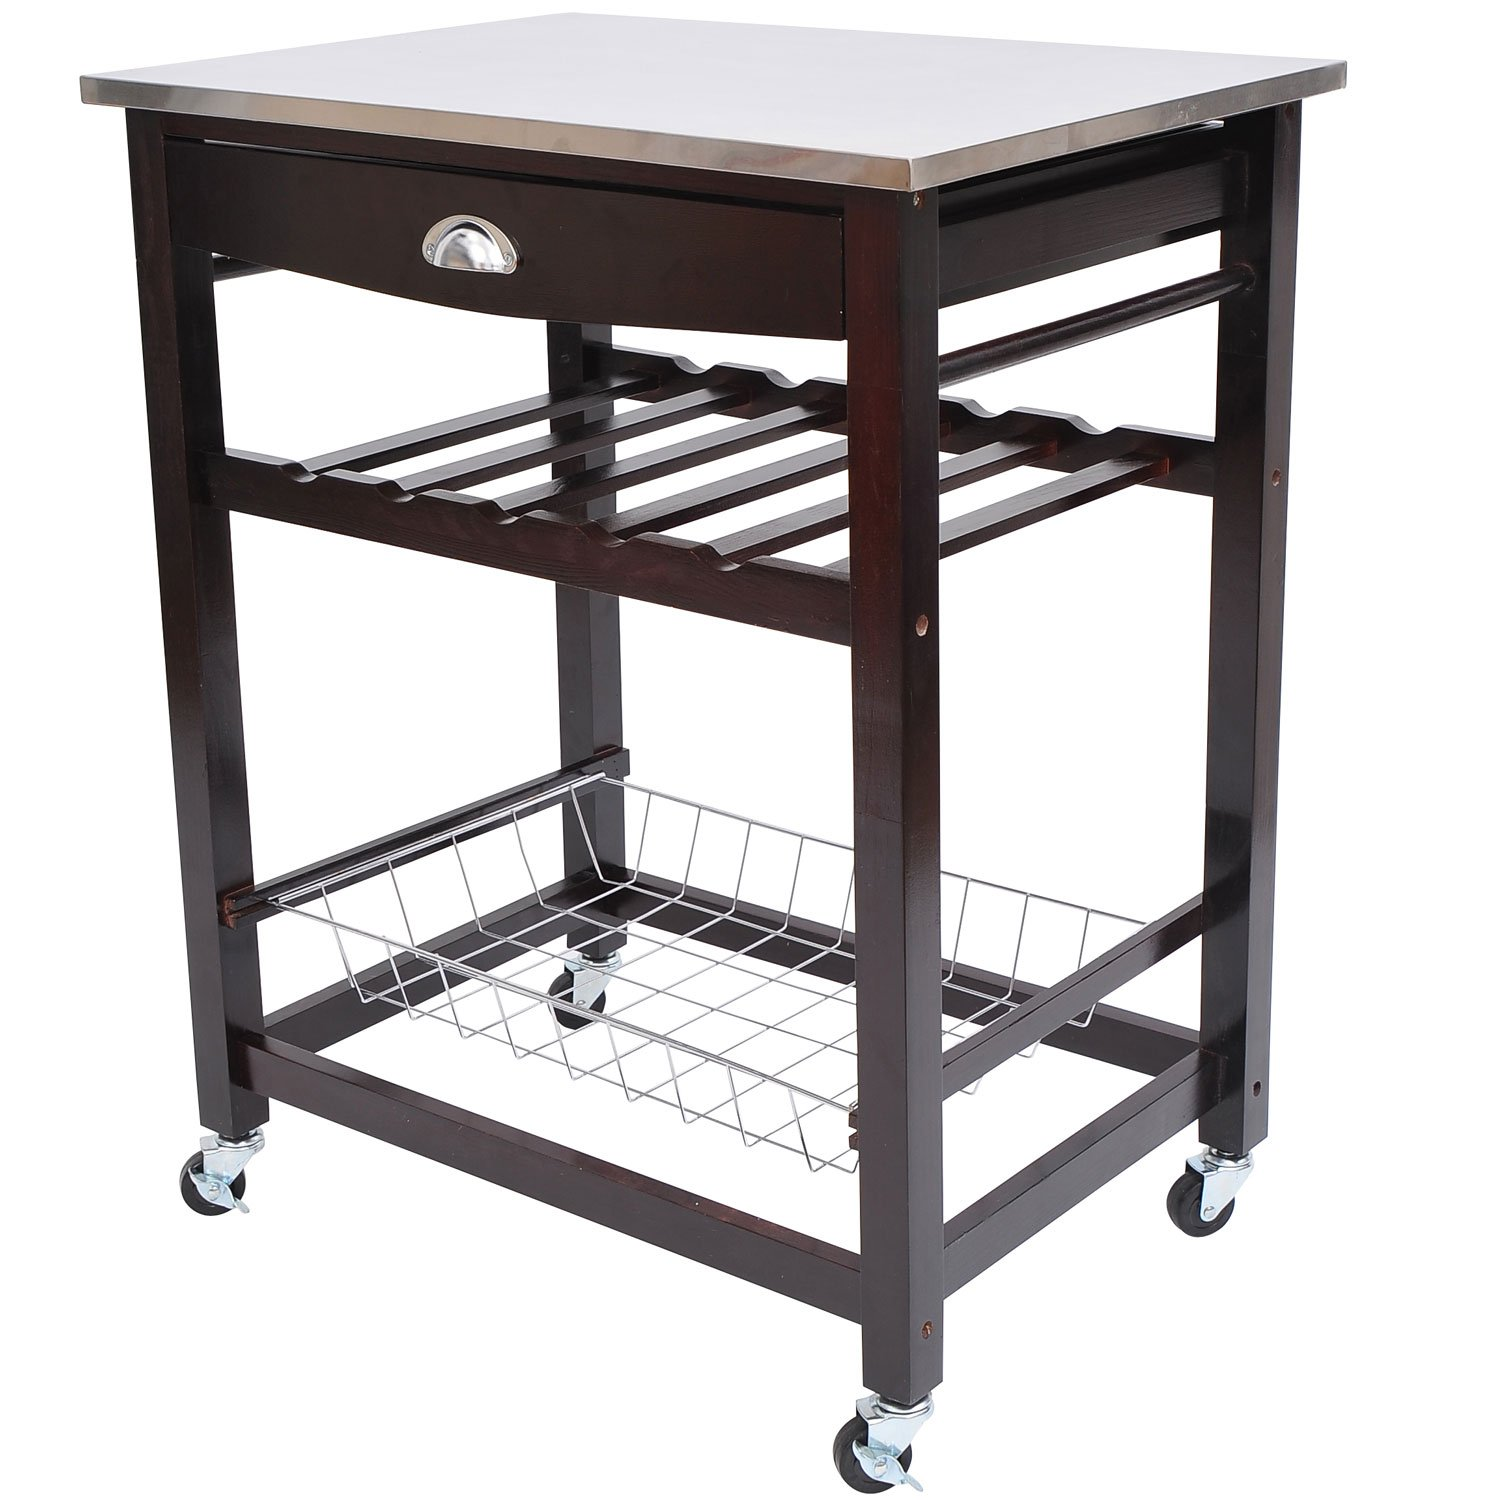 HomCom Rolling Stainless Steel Kitchen Dining Cart Trolley at Sears.com